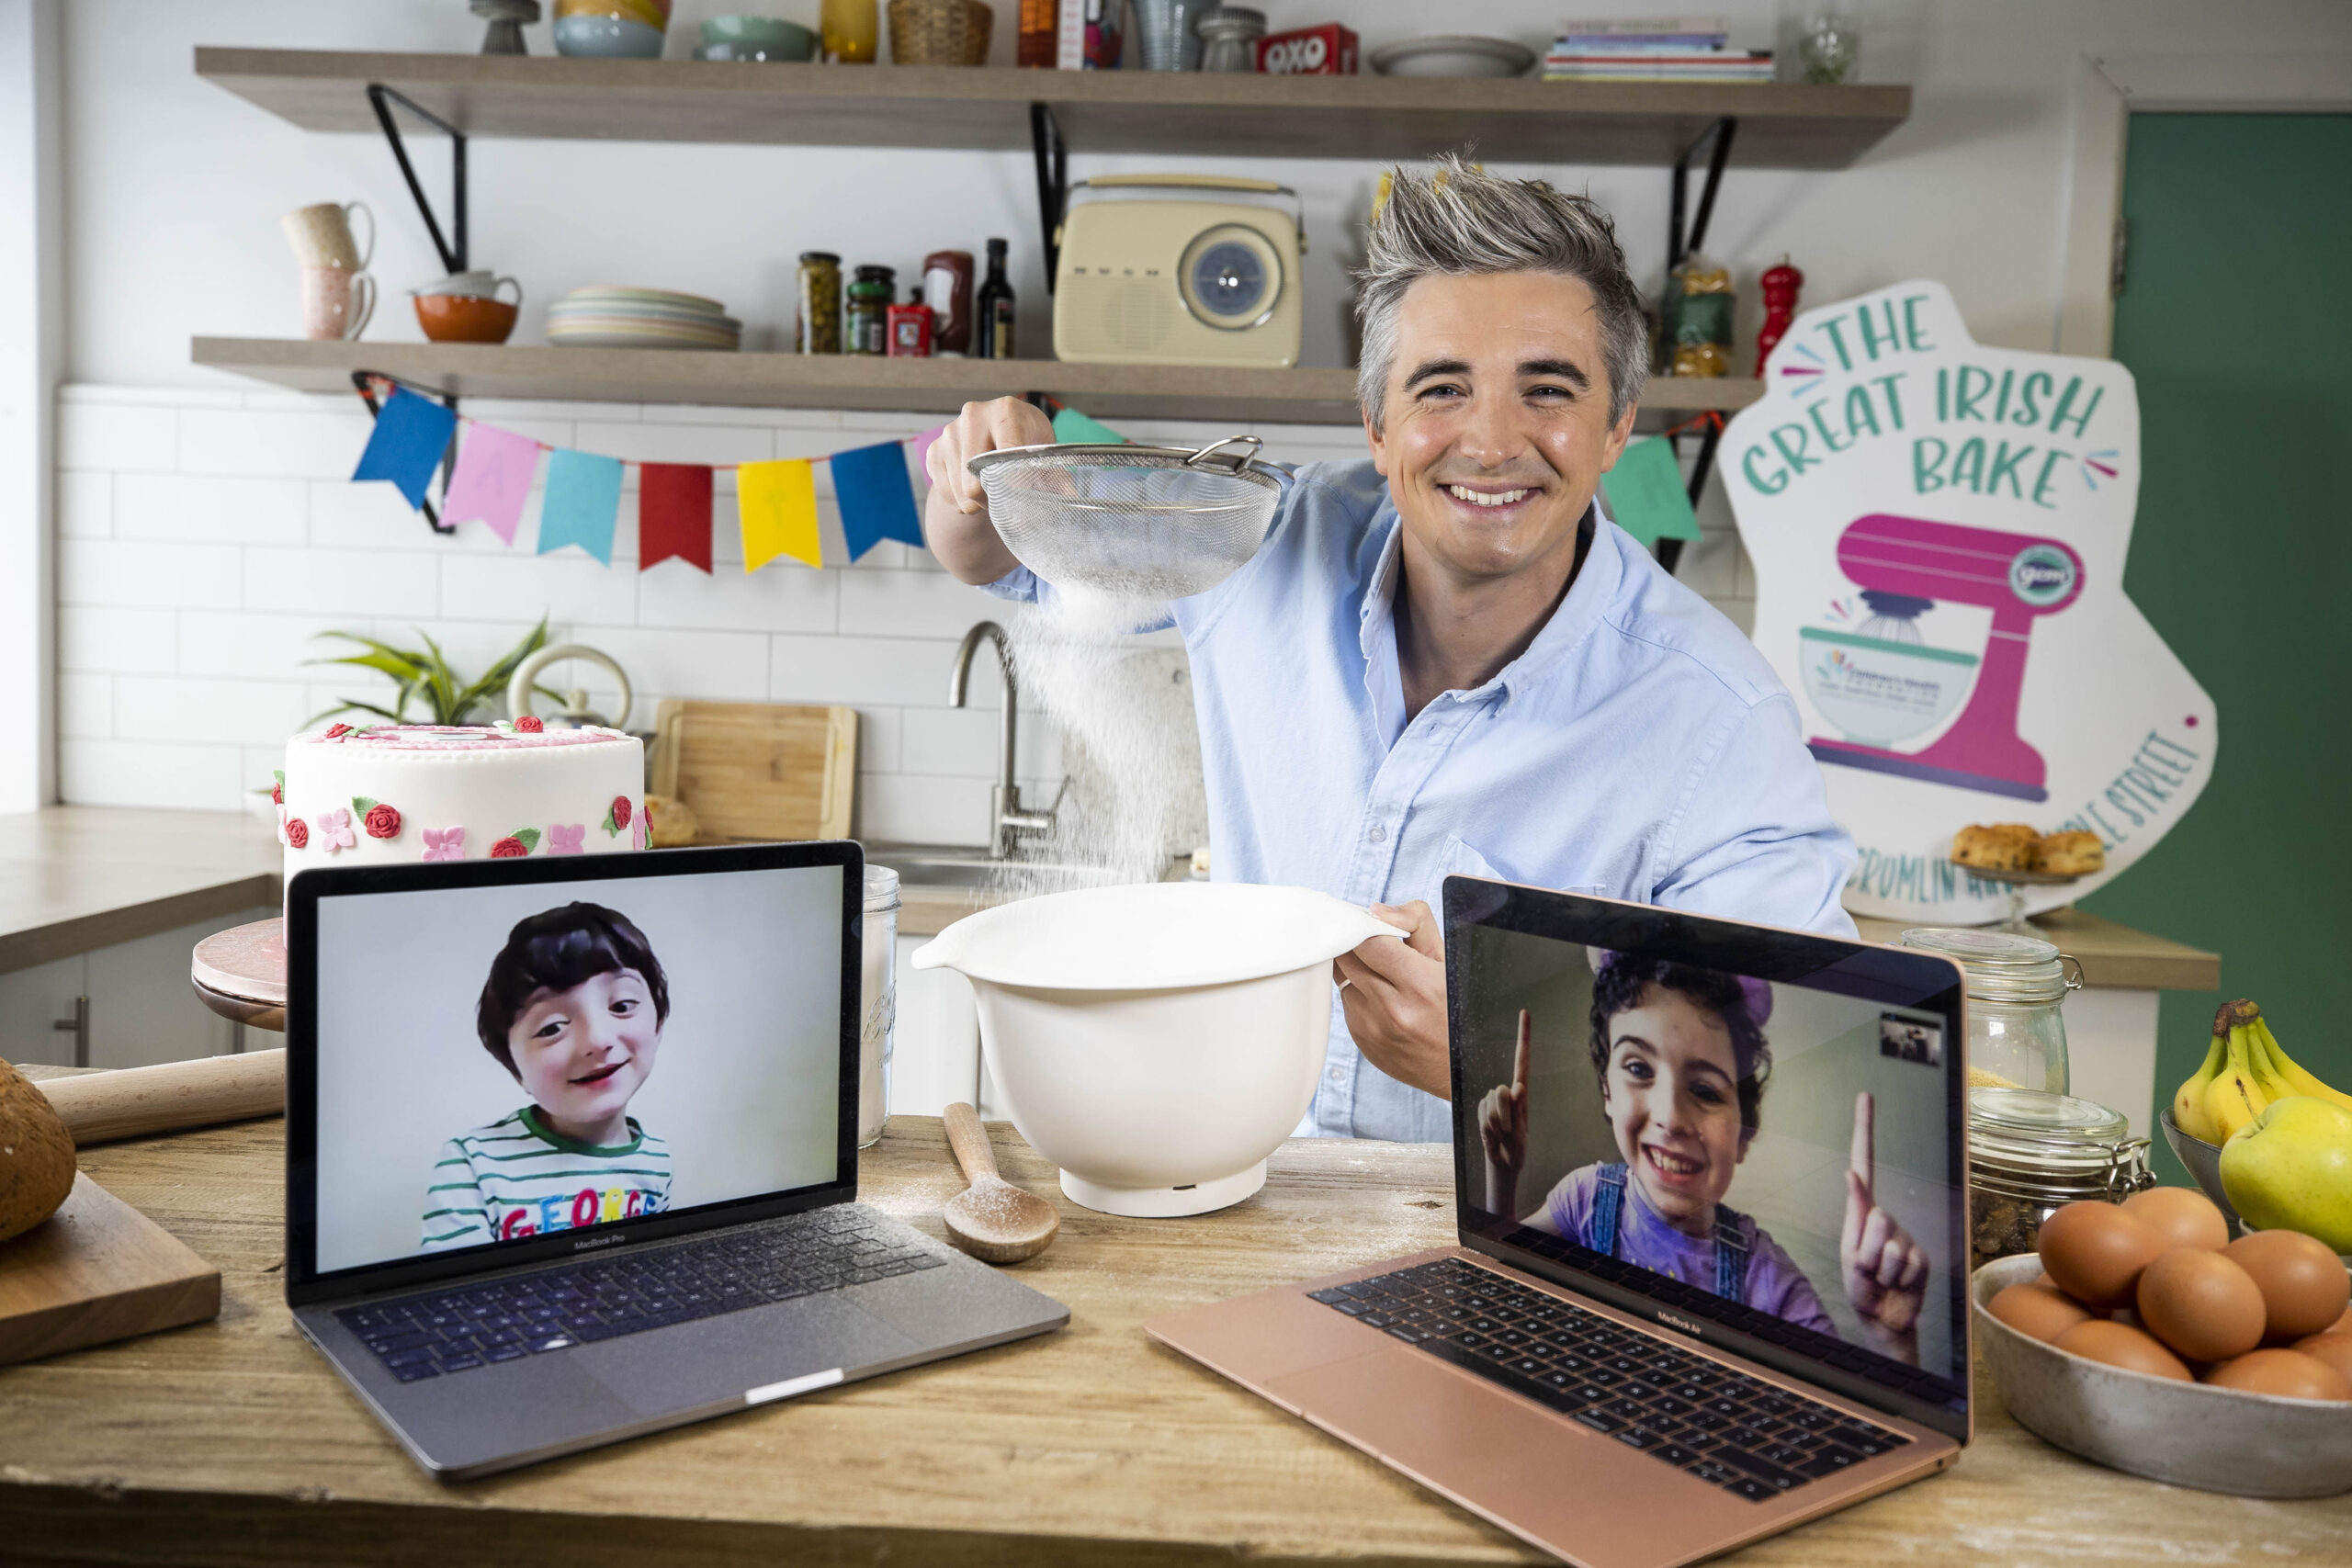 Donal Skehan announced as this year's Great Irish Bake Ambassador for Children's Health Foundation Crumlin and Temple Street